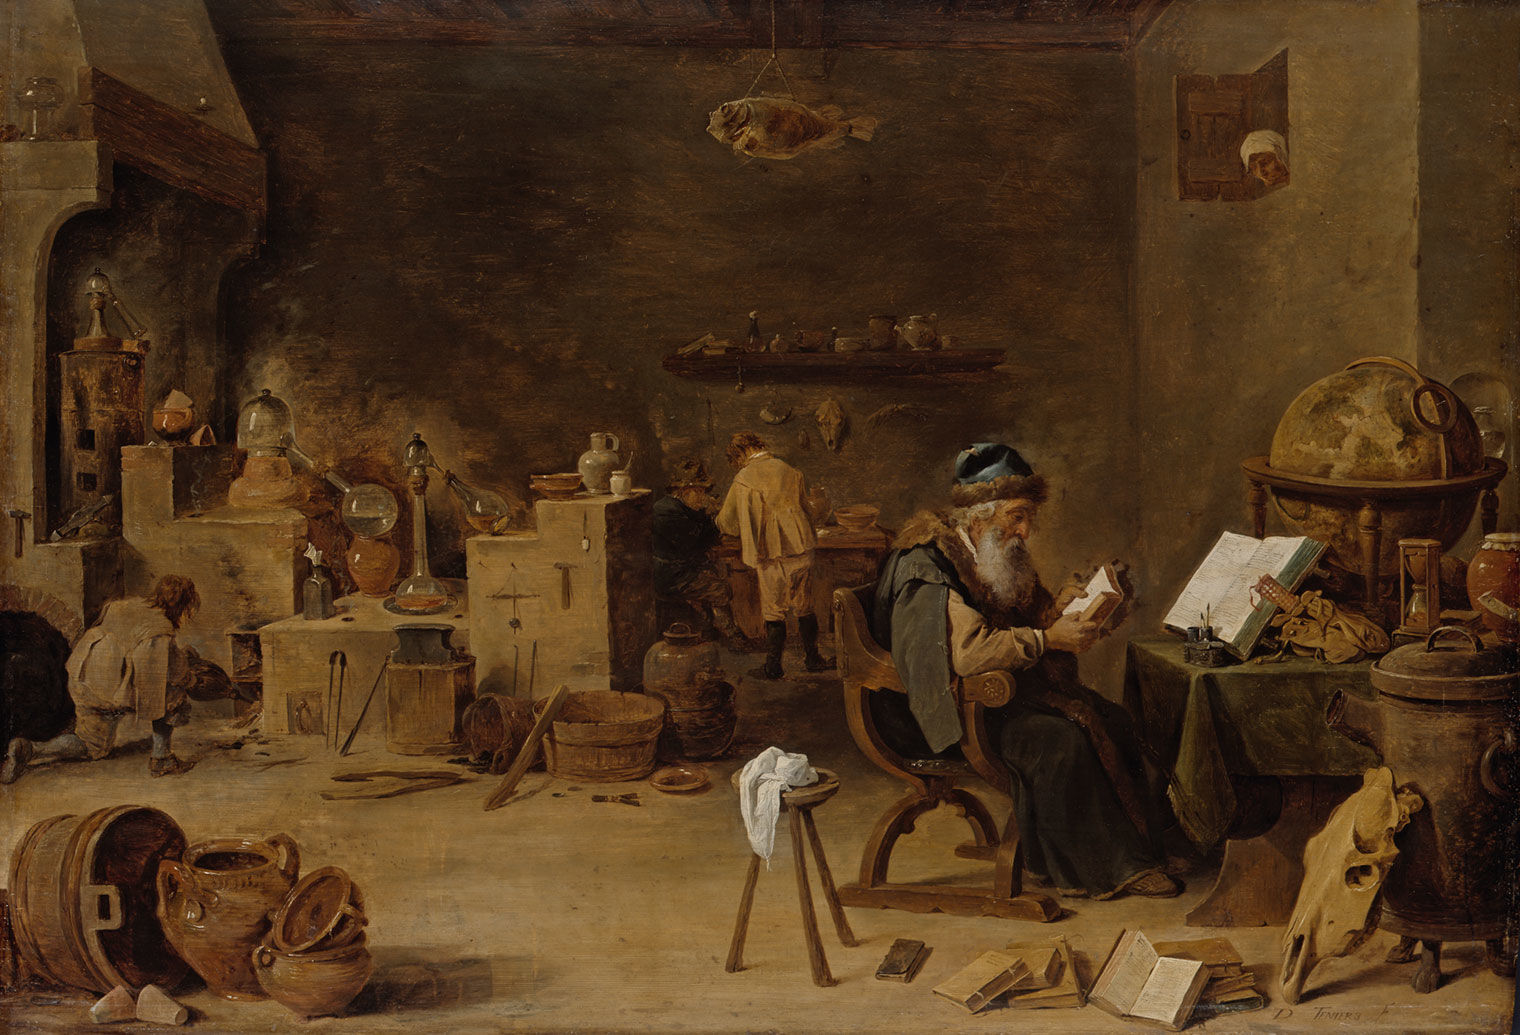 Alchemy, Science, and Innovations in the Decorative Arts